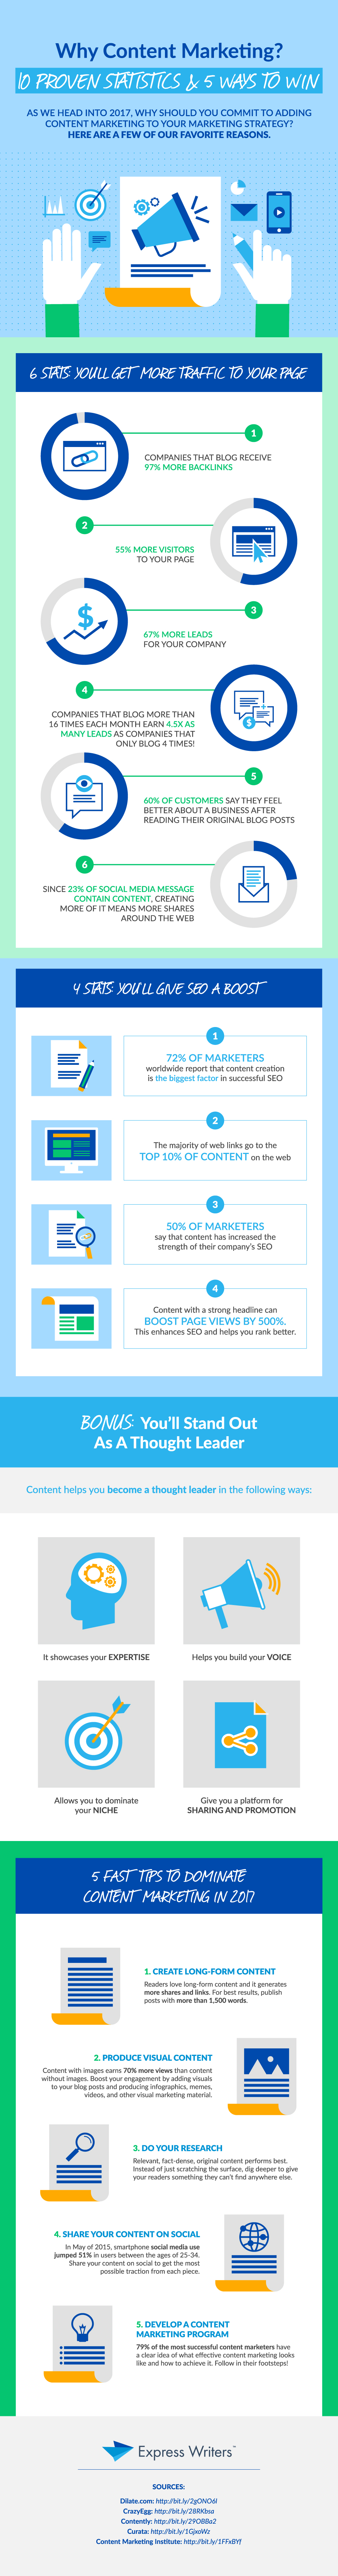 Why Content Marketing? 10 Proven Statistics & 5 Ways to Win [Infographic]